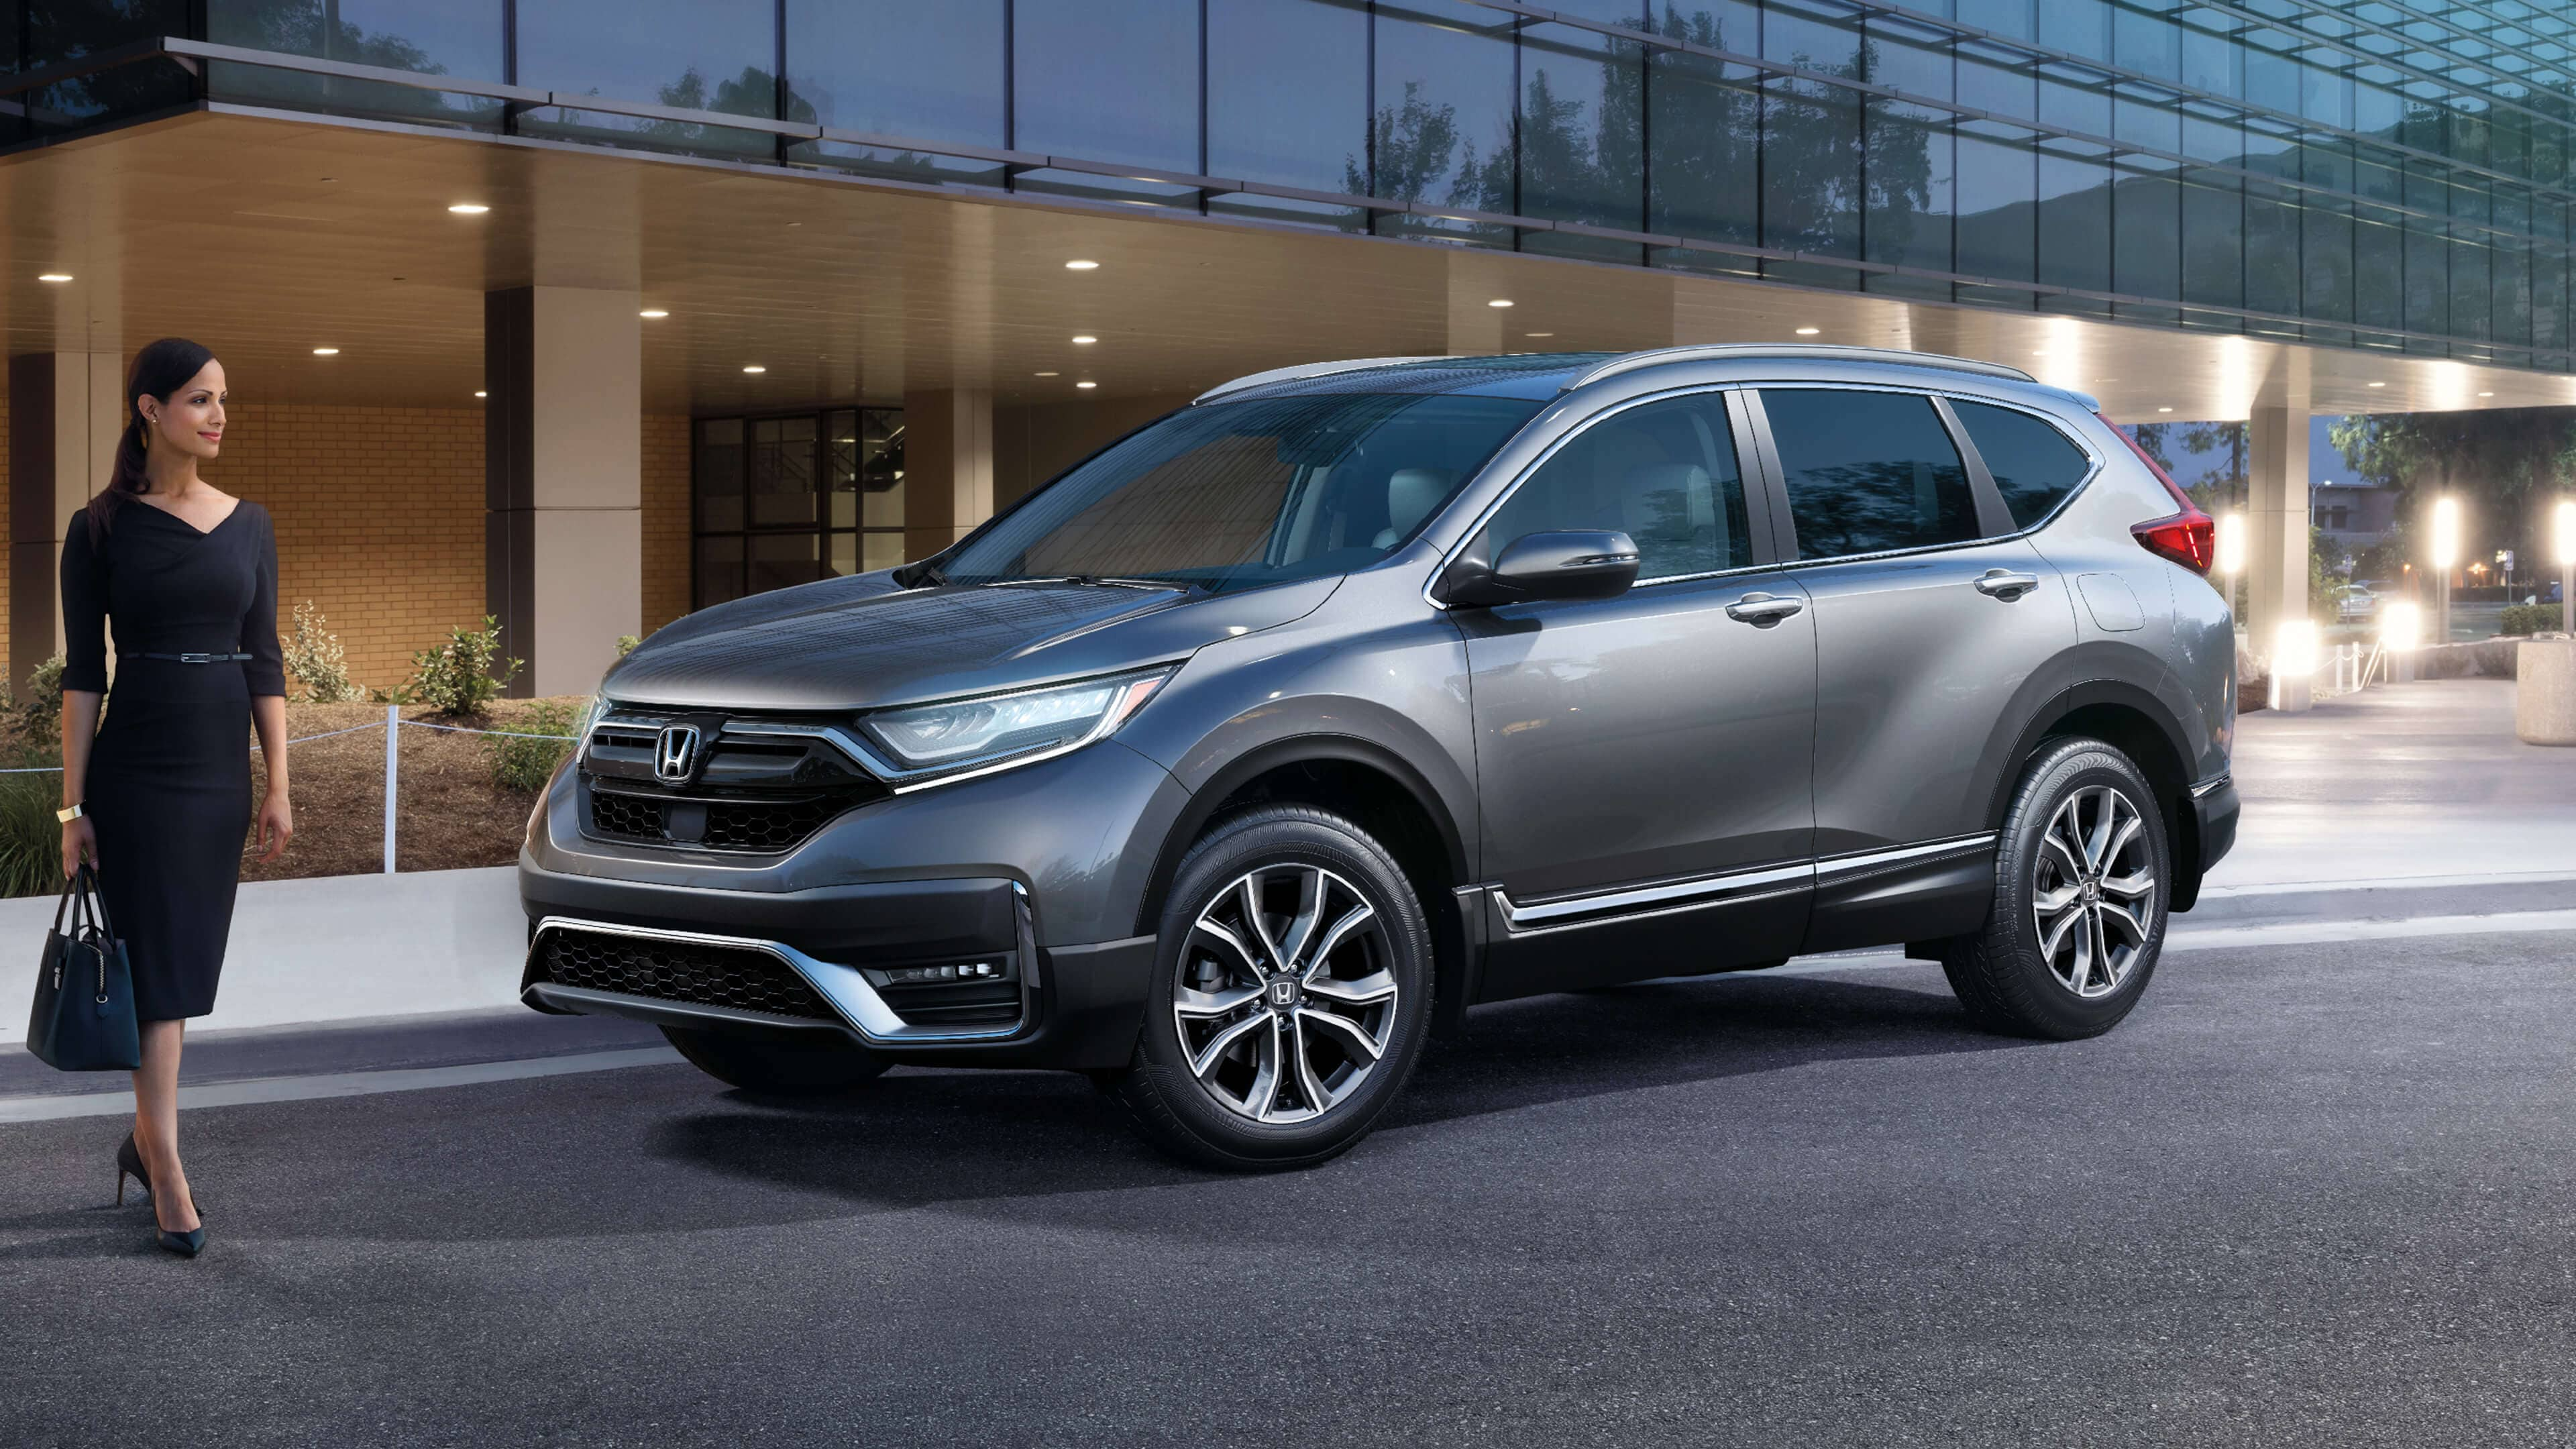 2020 Honda CR-V With Business Women - Wood Wheaton Honda